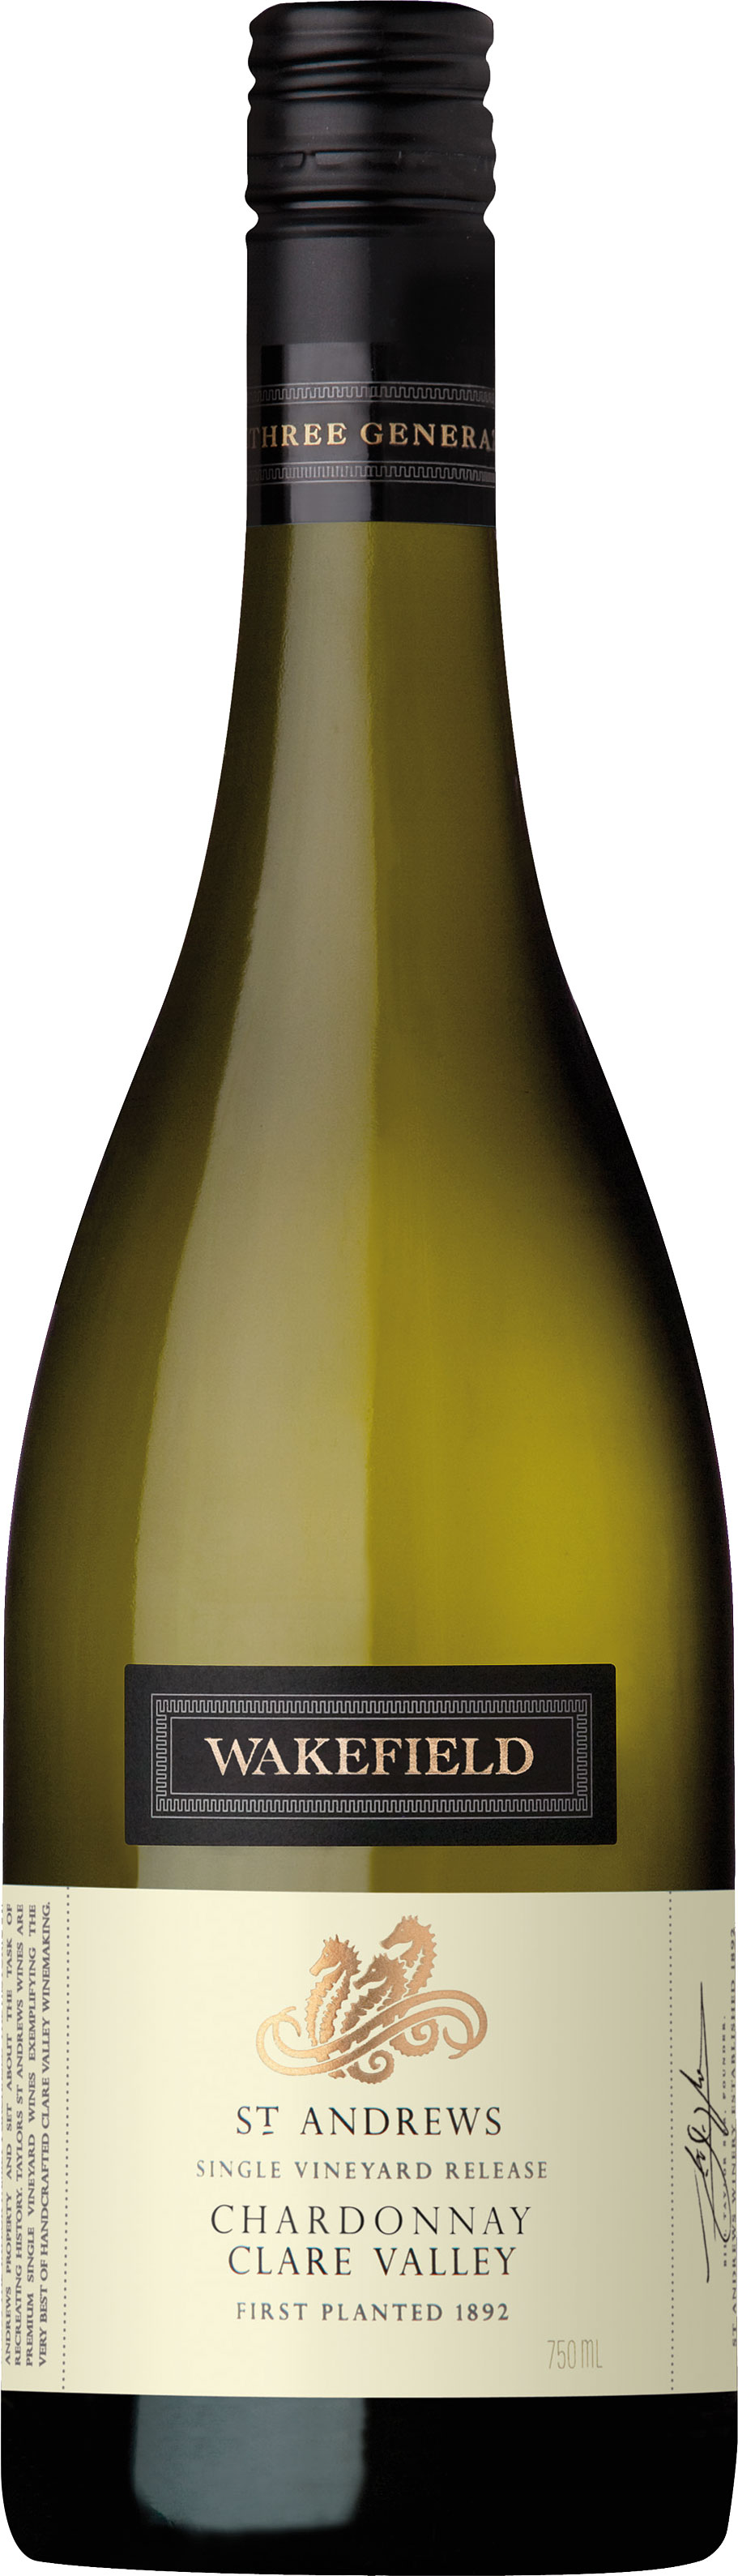 Wakefield Wines - St Andrews Chardonnay 2016 6x 75cl Bottles